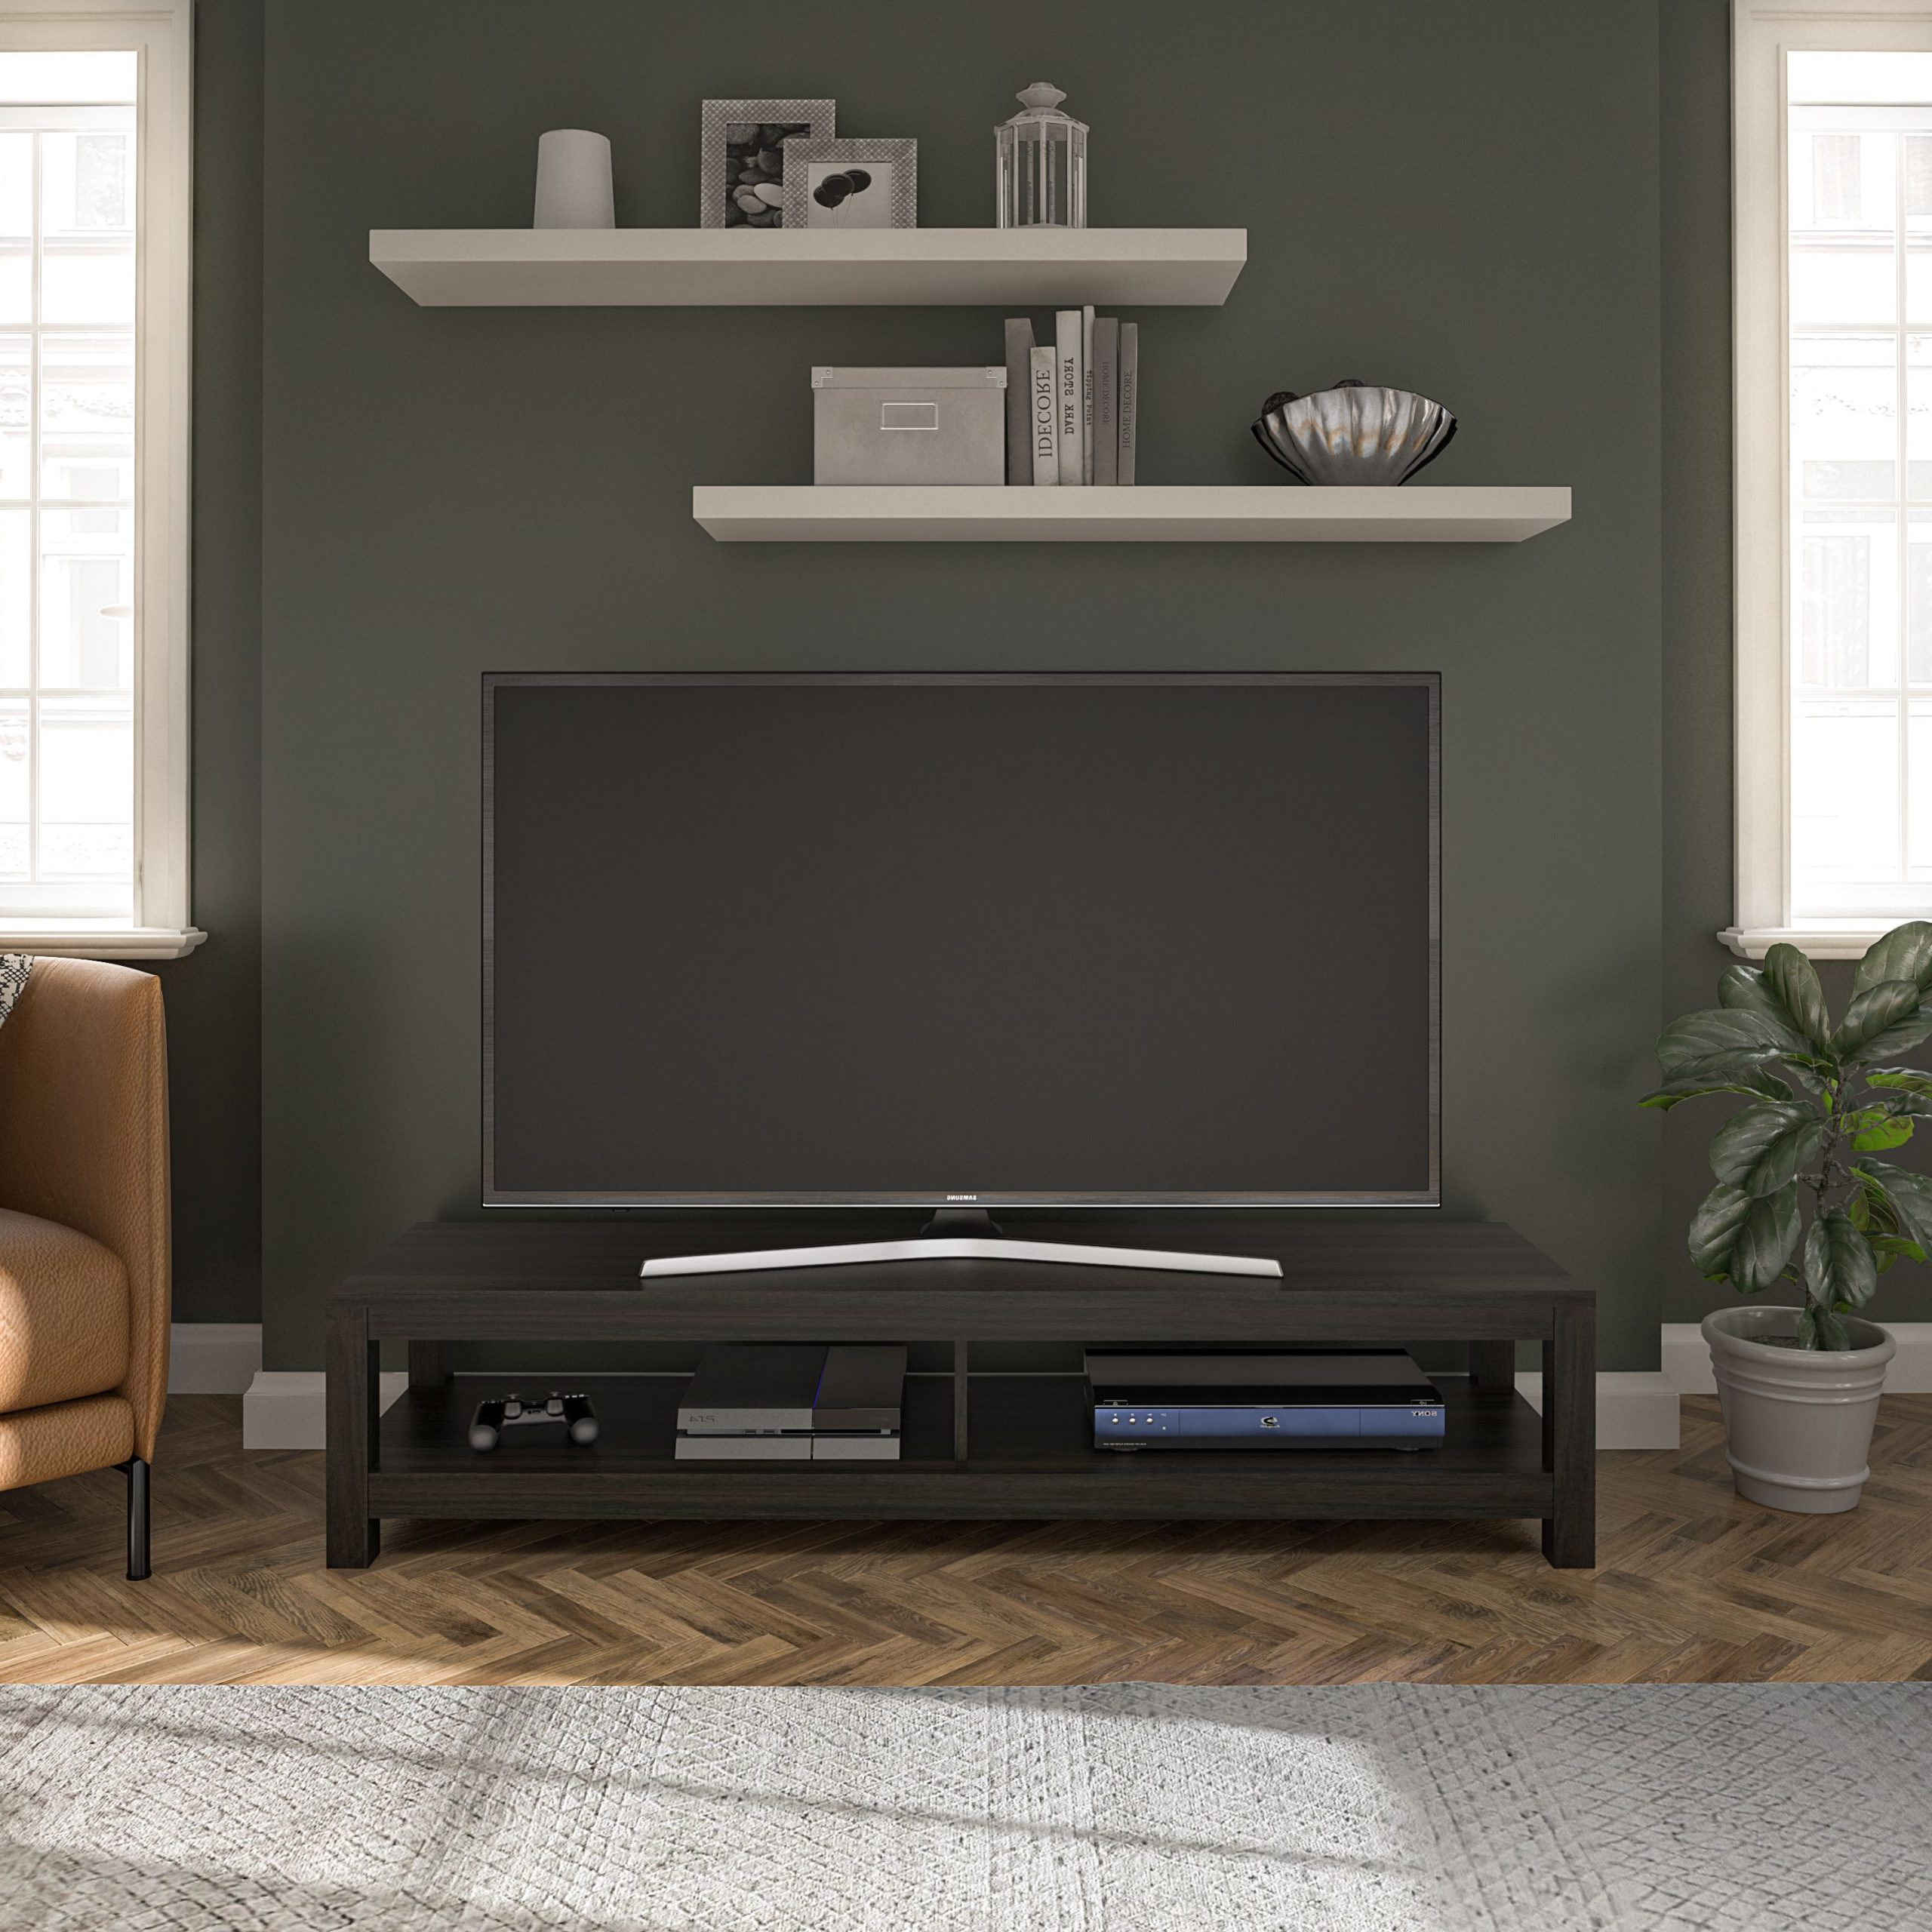 """Mainstays Easy Assembly Tv Stand For Tv's Up To 65 Throughout Newest Brigner Tv Stands For Tvs Up To 65"""" (View 6 of 25)"""